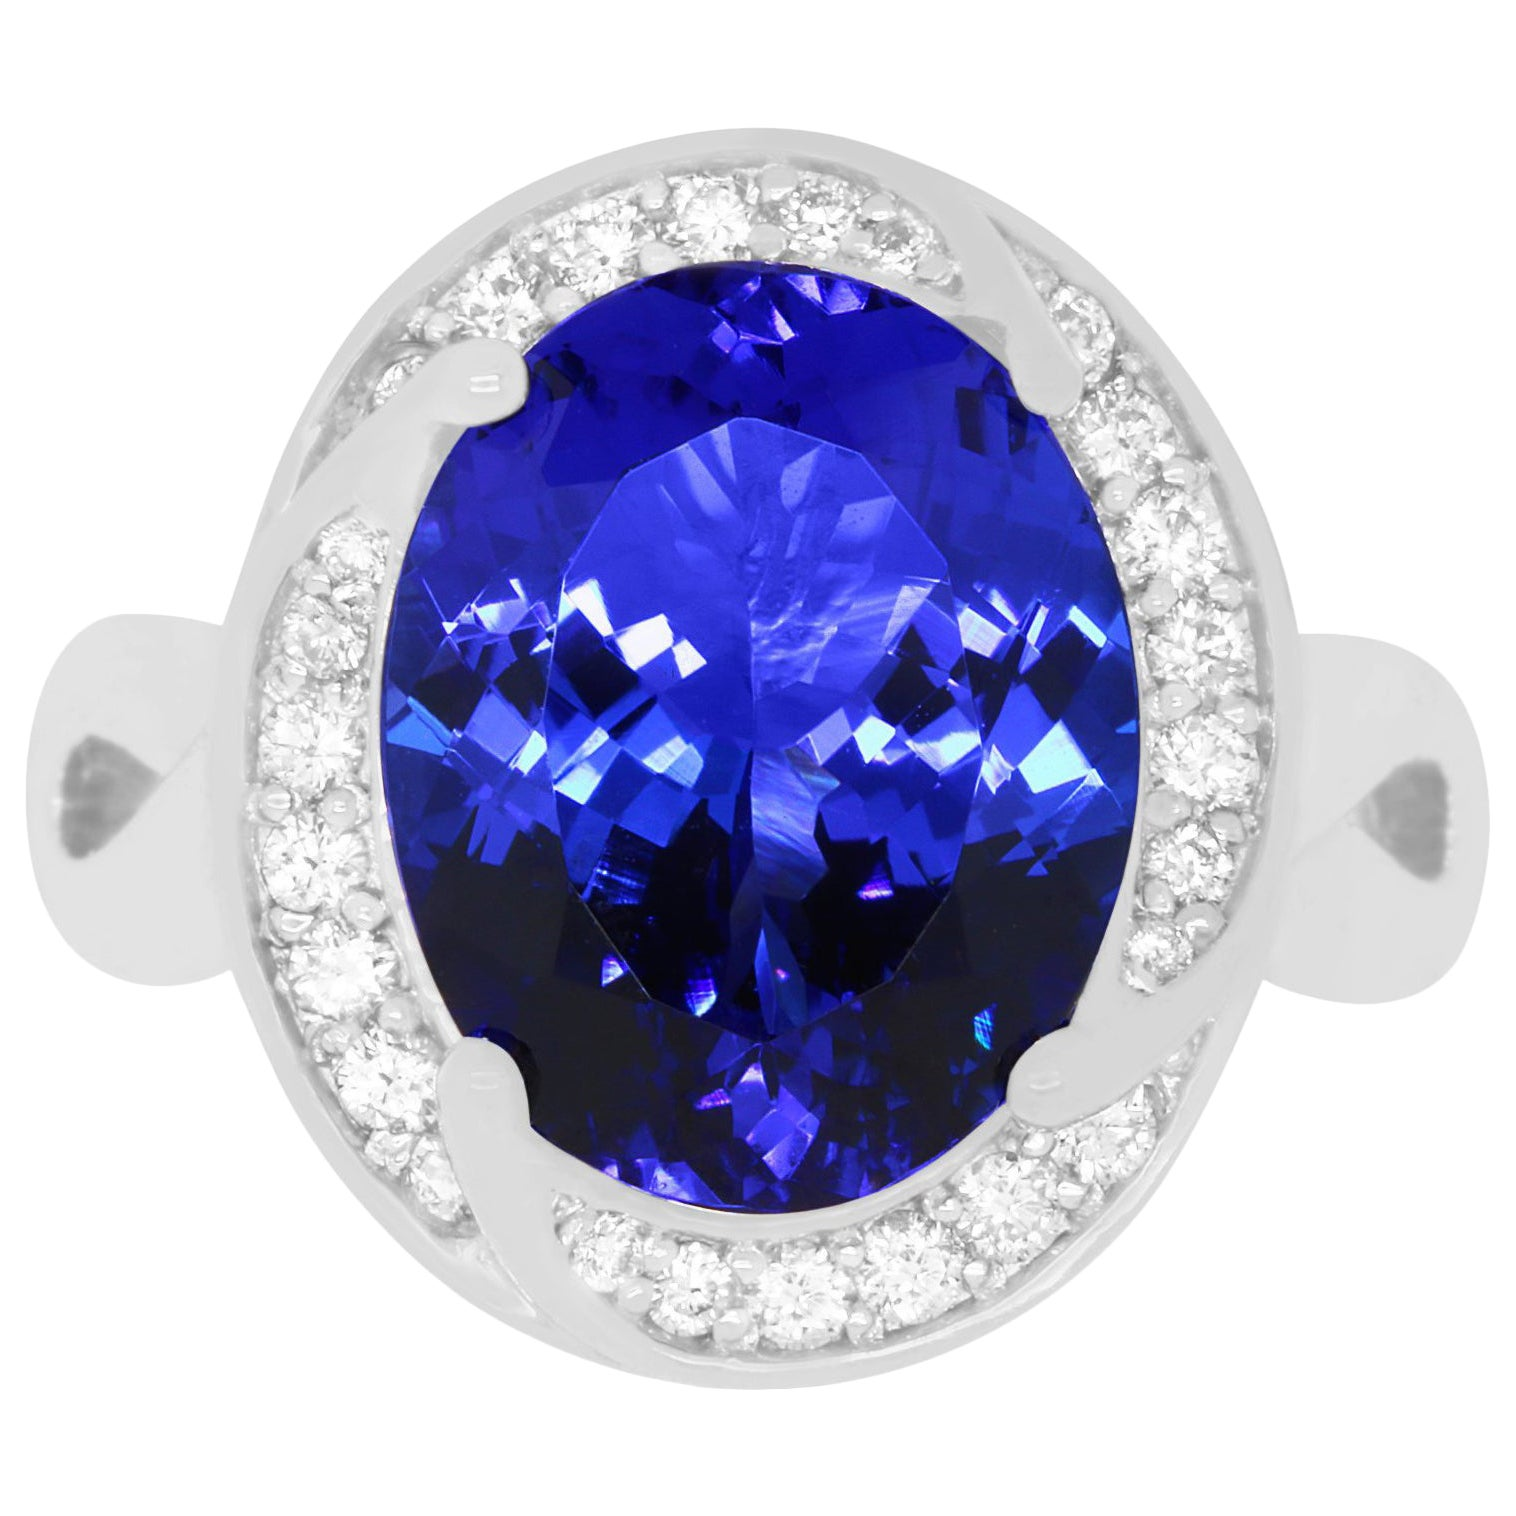 6.31 Carat Oval Shaped Tanzanite and 0.31 Carat White Diamond Ring